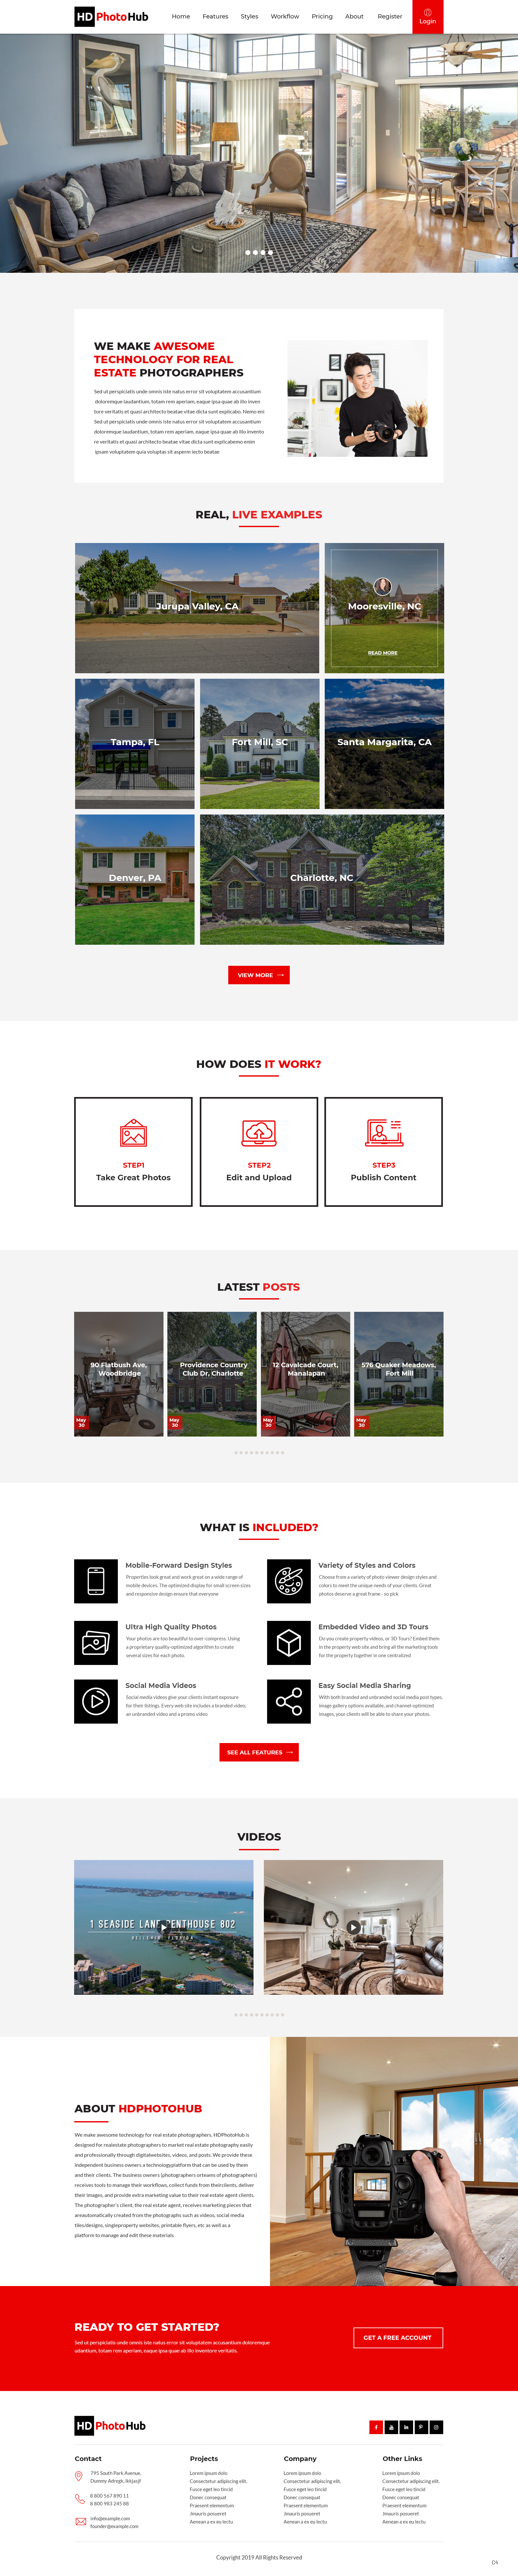 Participating Entry #2 for Website Design contest - Single Real Estate Property Listing Website Template - original